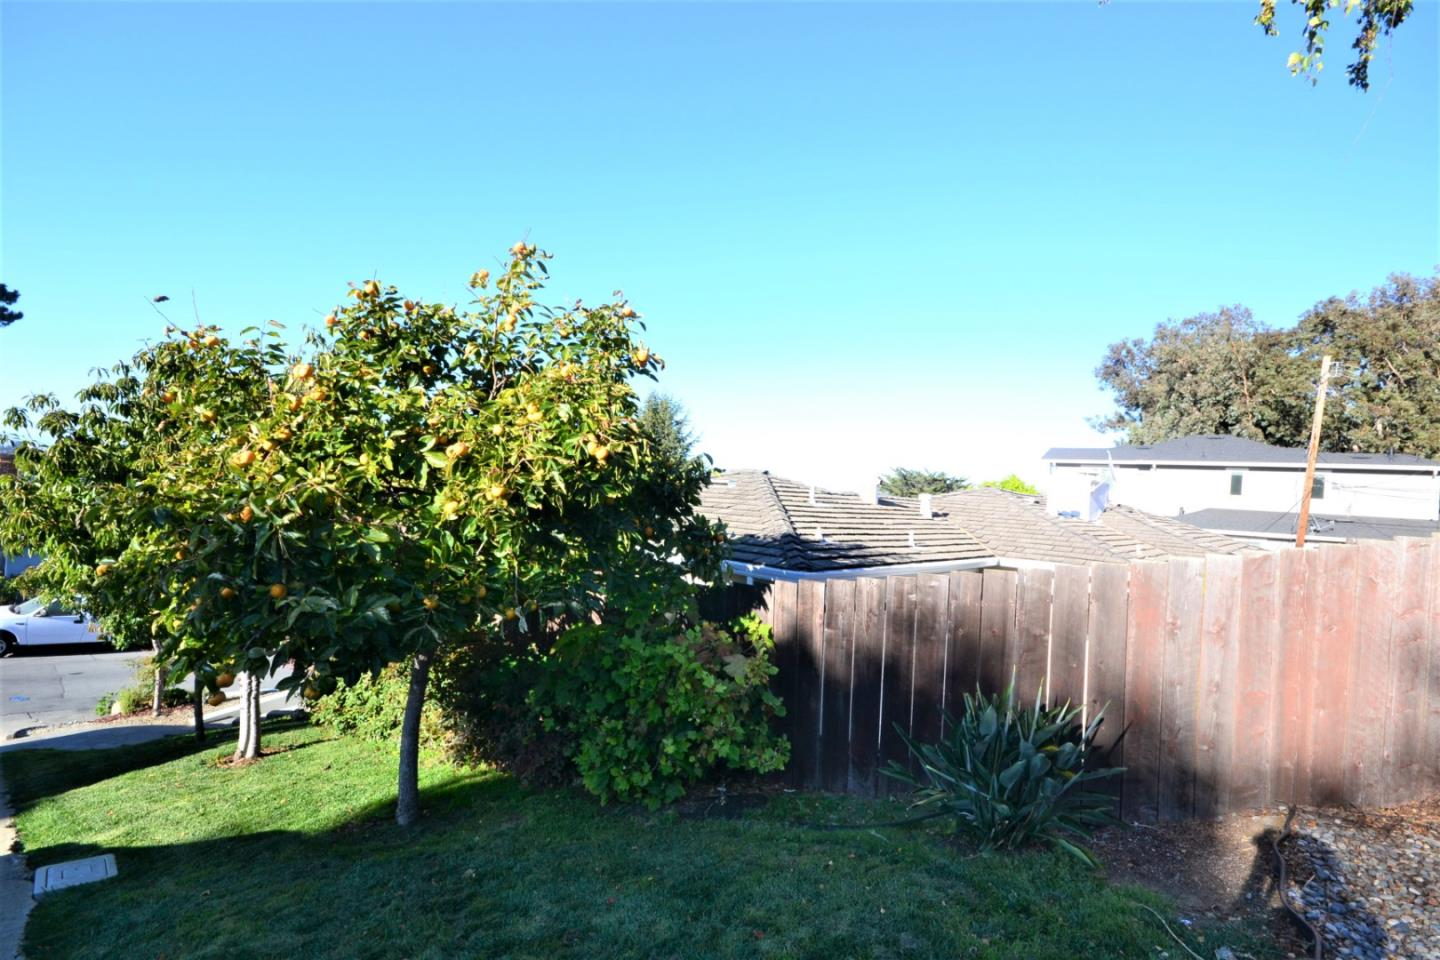 319 We 39th Avenue San Mateo, CA 94403 - MLS #: ML81727587